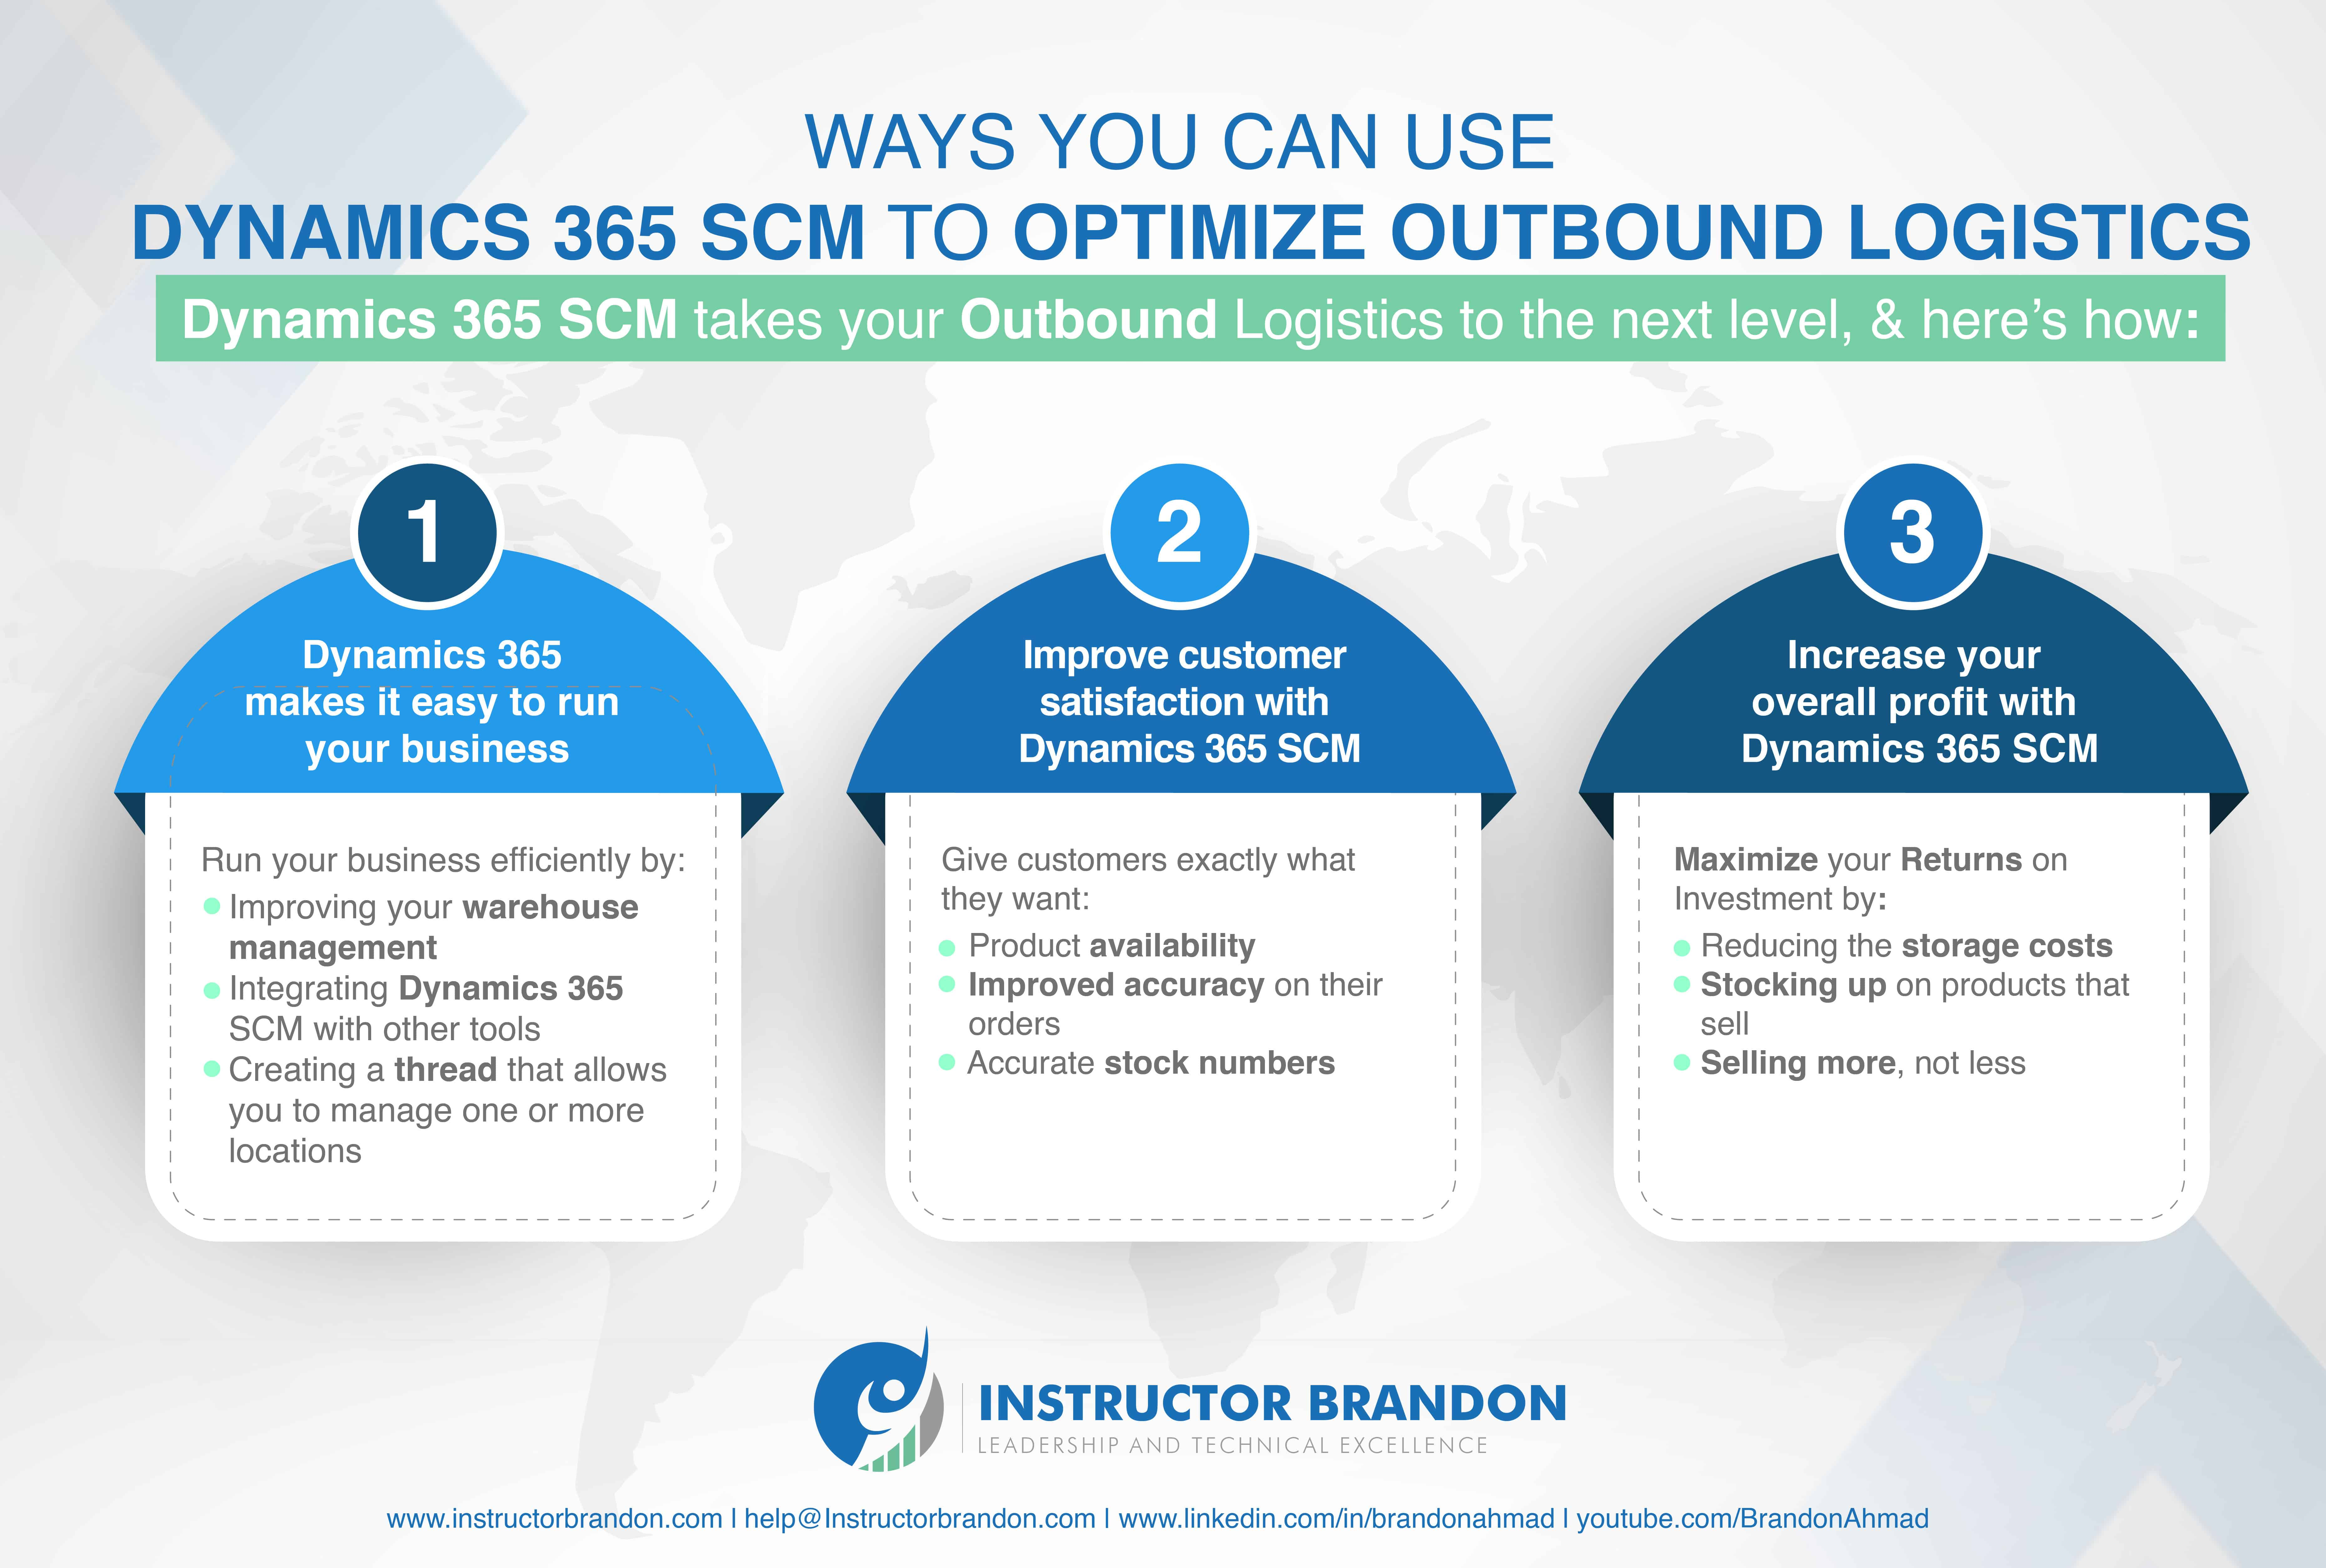 Infographic Showing How Companies can Optimize Their Supply Chain With Dynamics 365 SCM